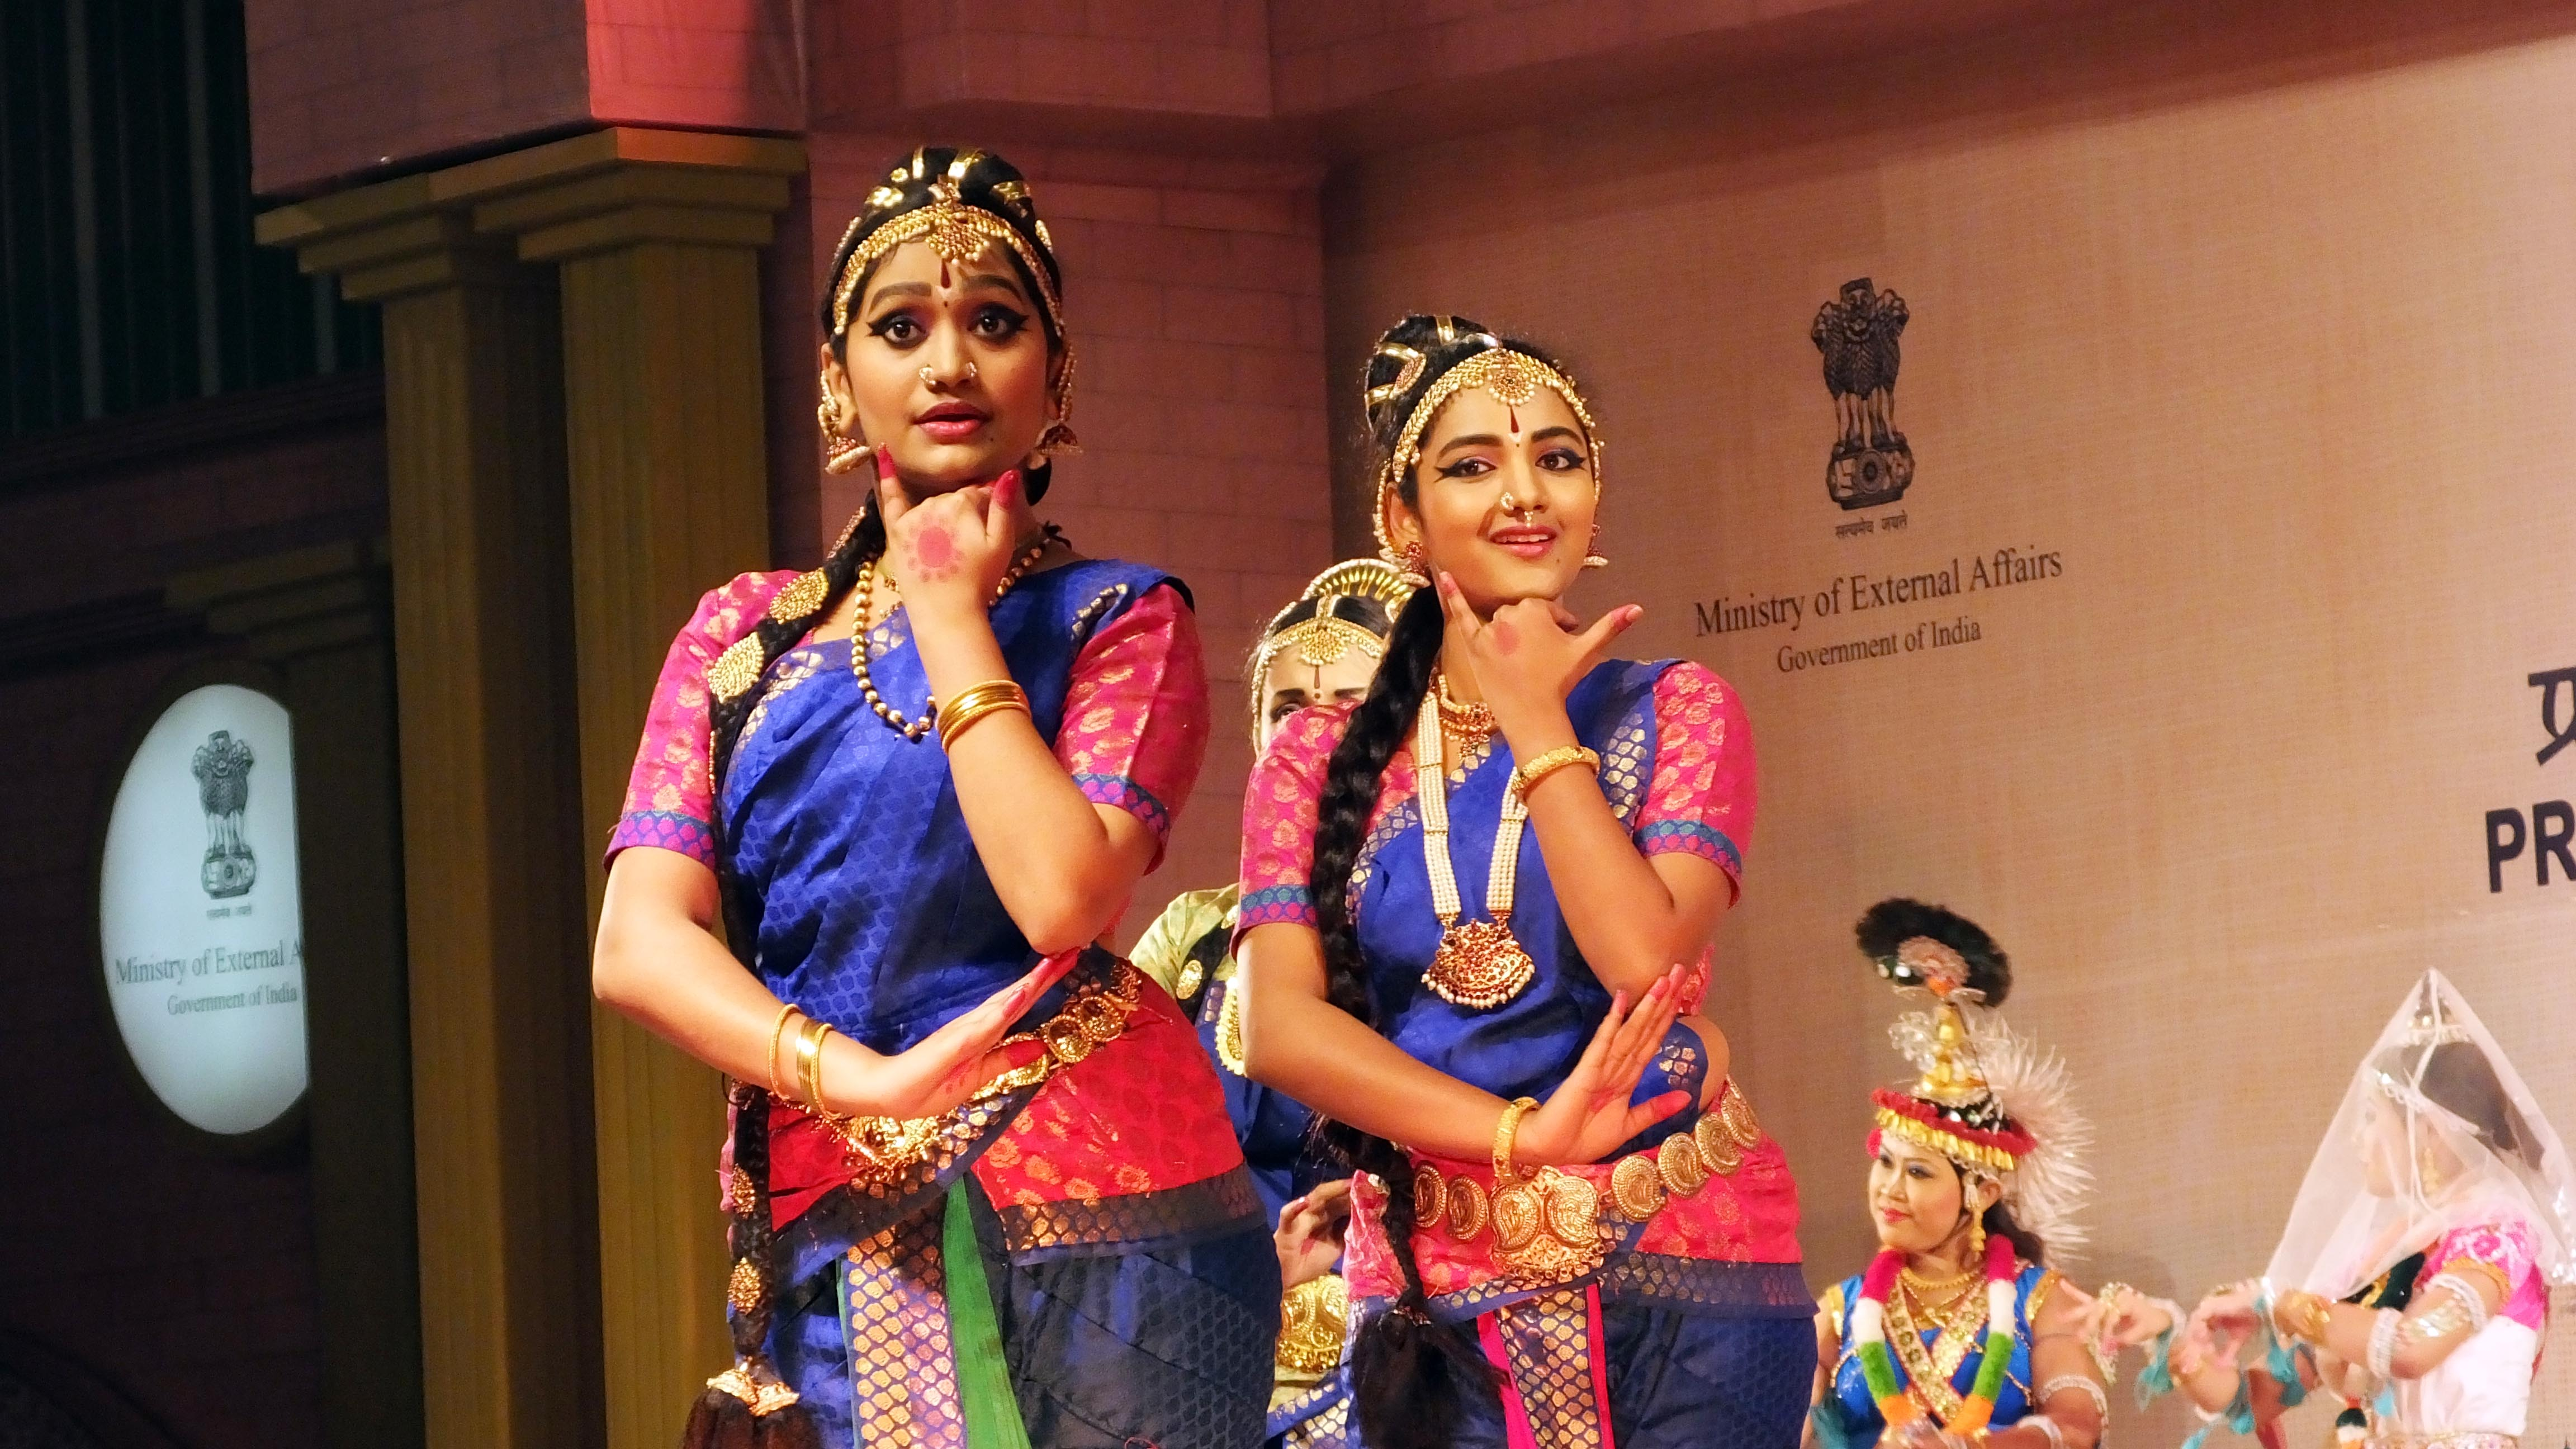 Different Indian dance forms originated in different parts of India and developed according to the local traditions